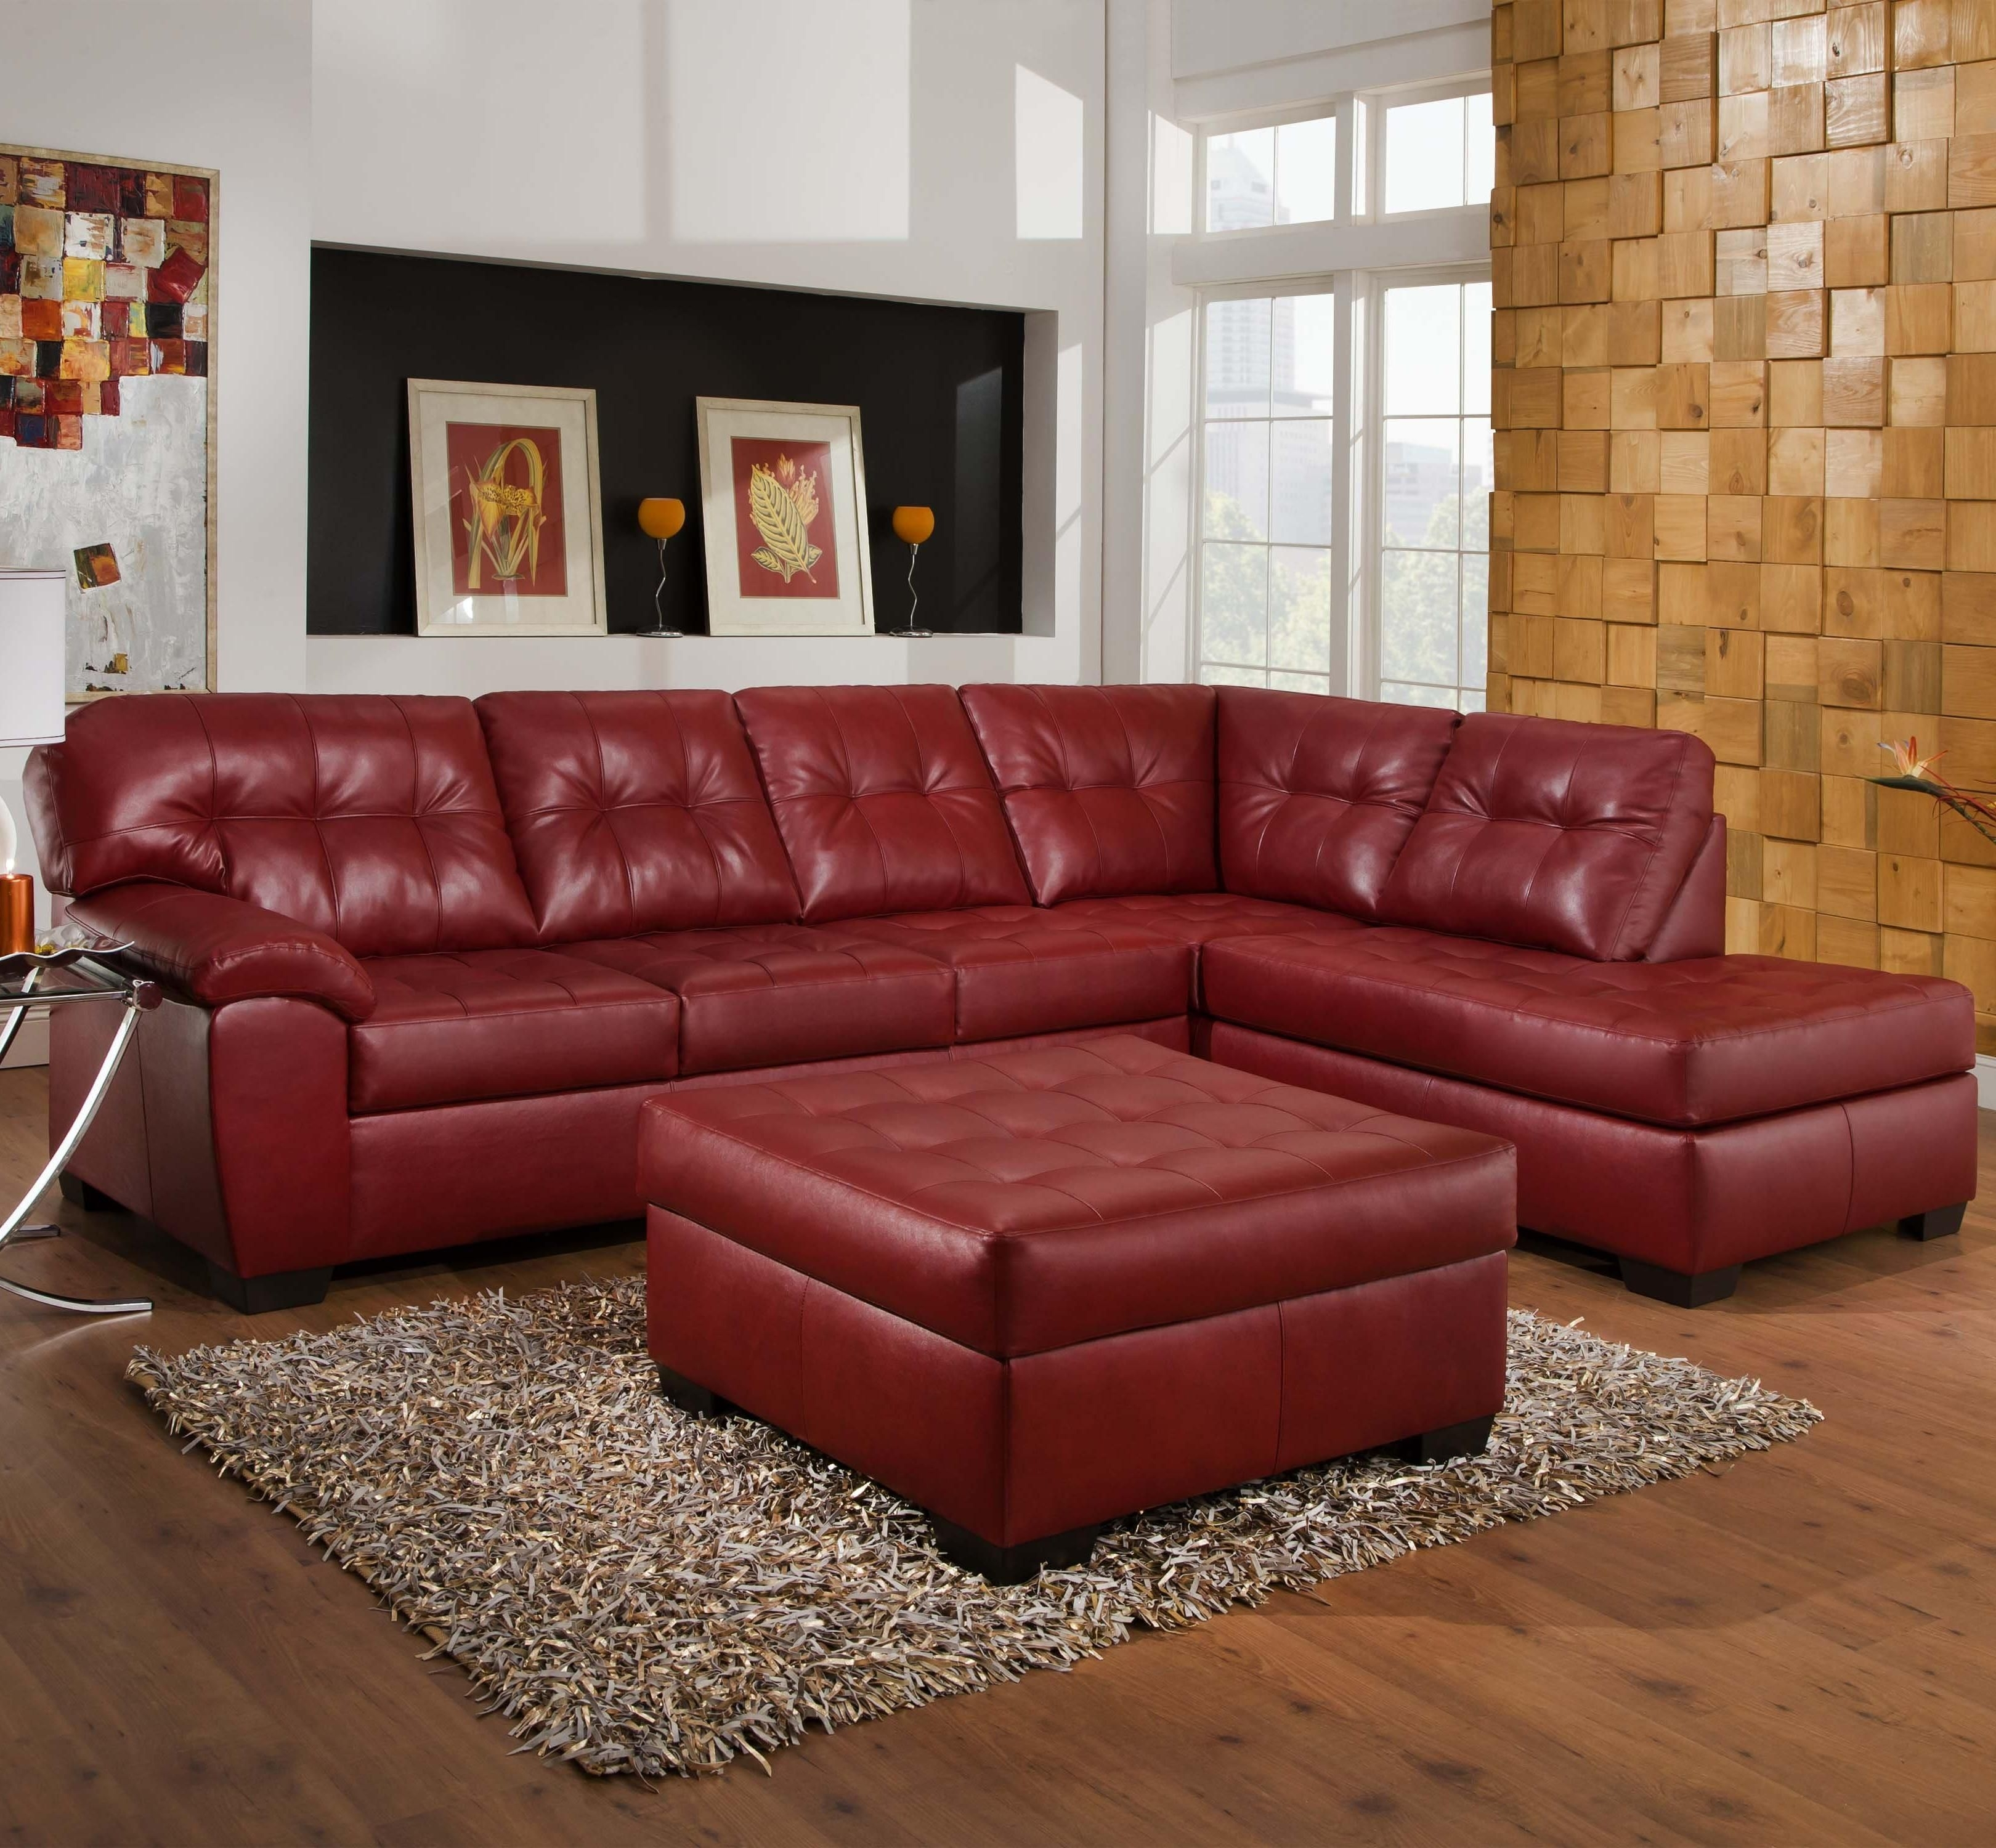 9569 2 Piece Sectional With Tufted Seats & Backsimmons intended for Memphis Sectional Sofas (Image 2 of 10)